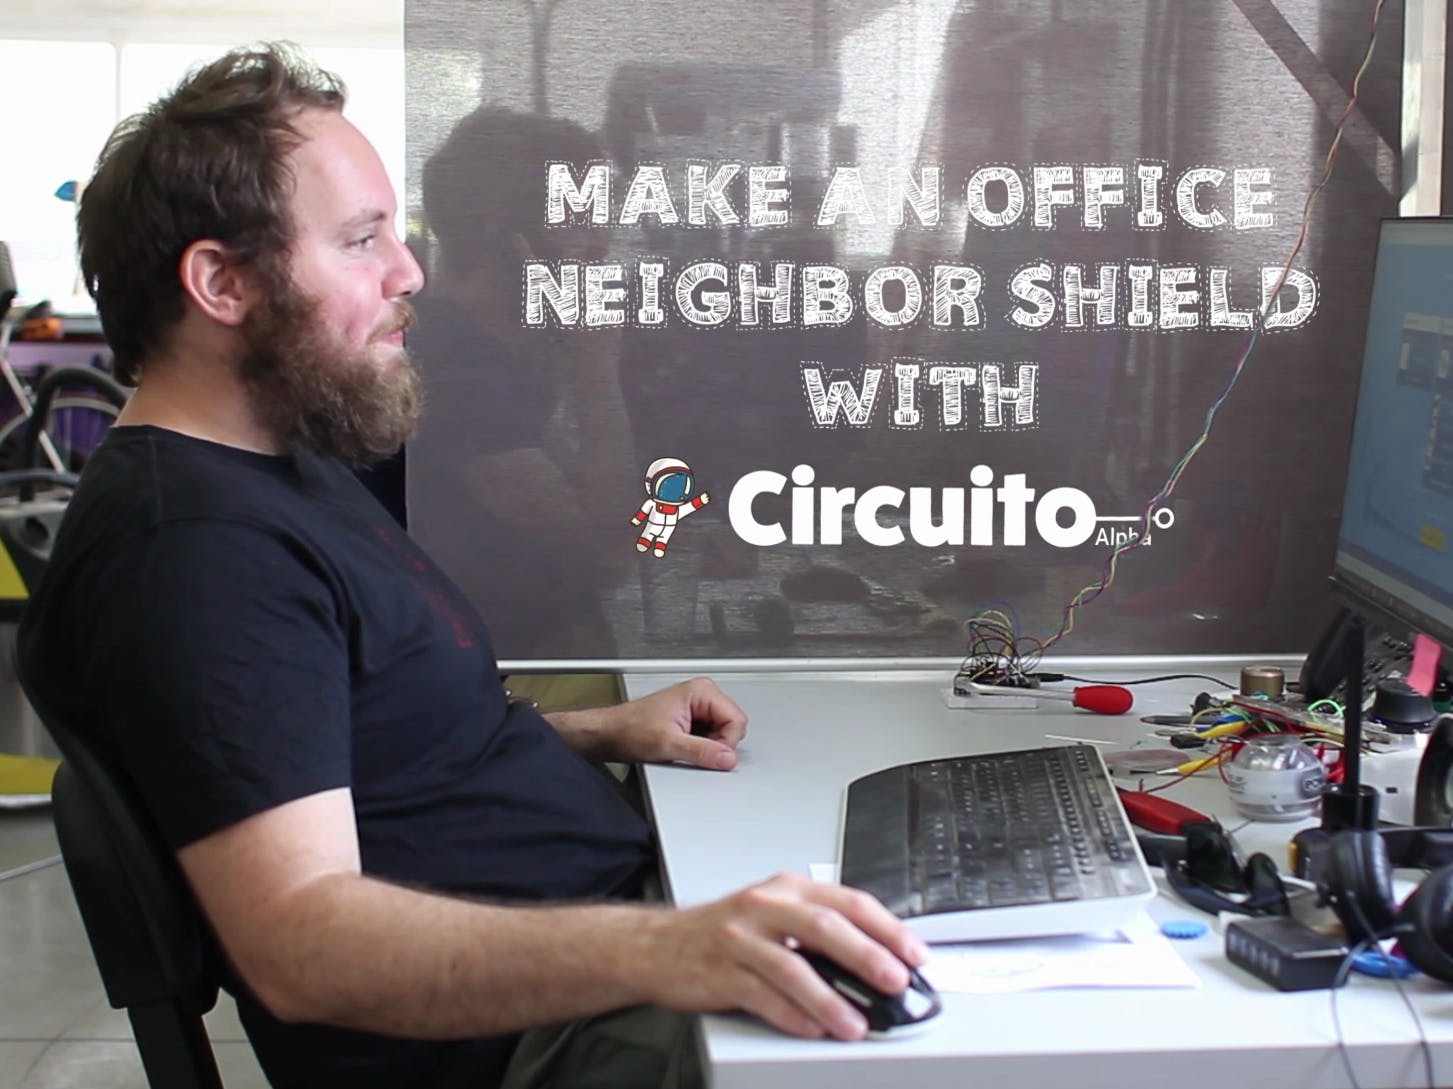 Office Neighbor Shield with Arduino